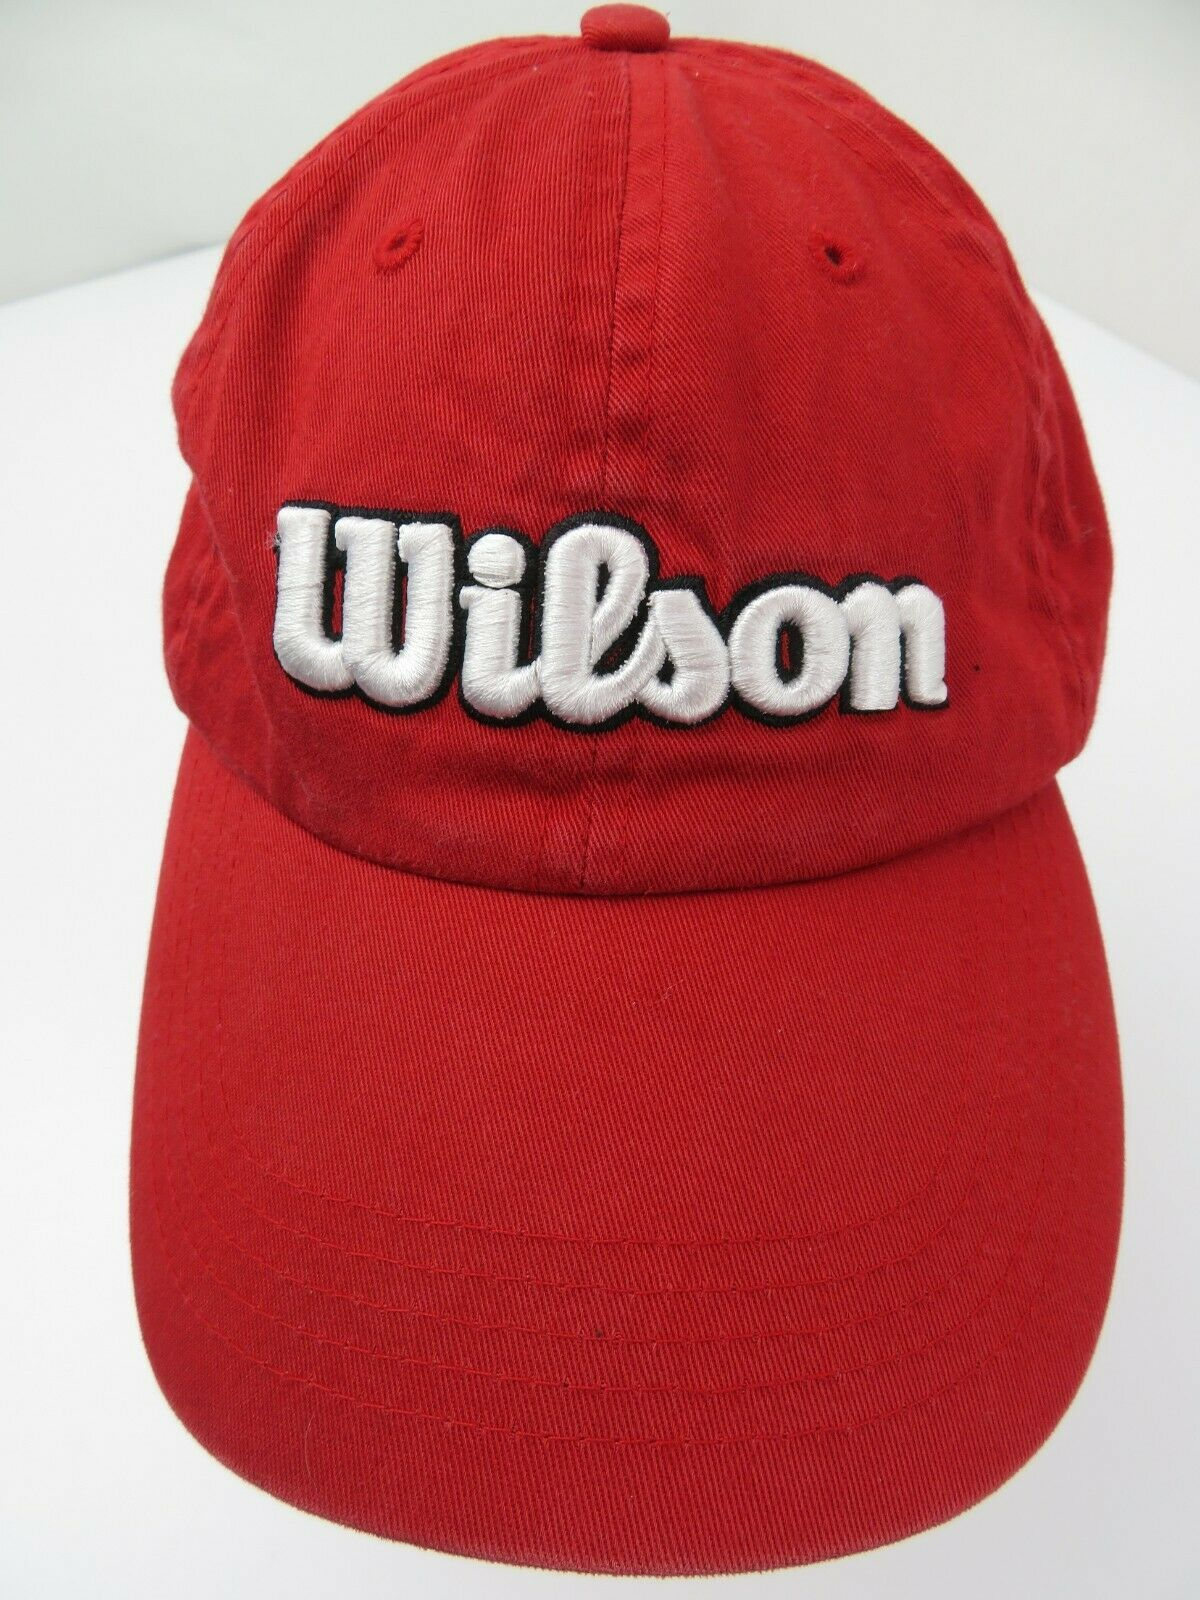 Primary image for Wilson Brand Sunglass Fit Adjustable Adult Cap Hat